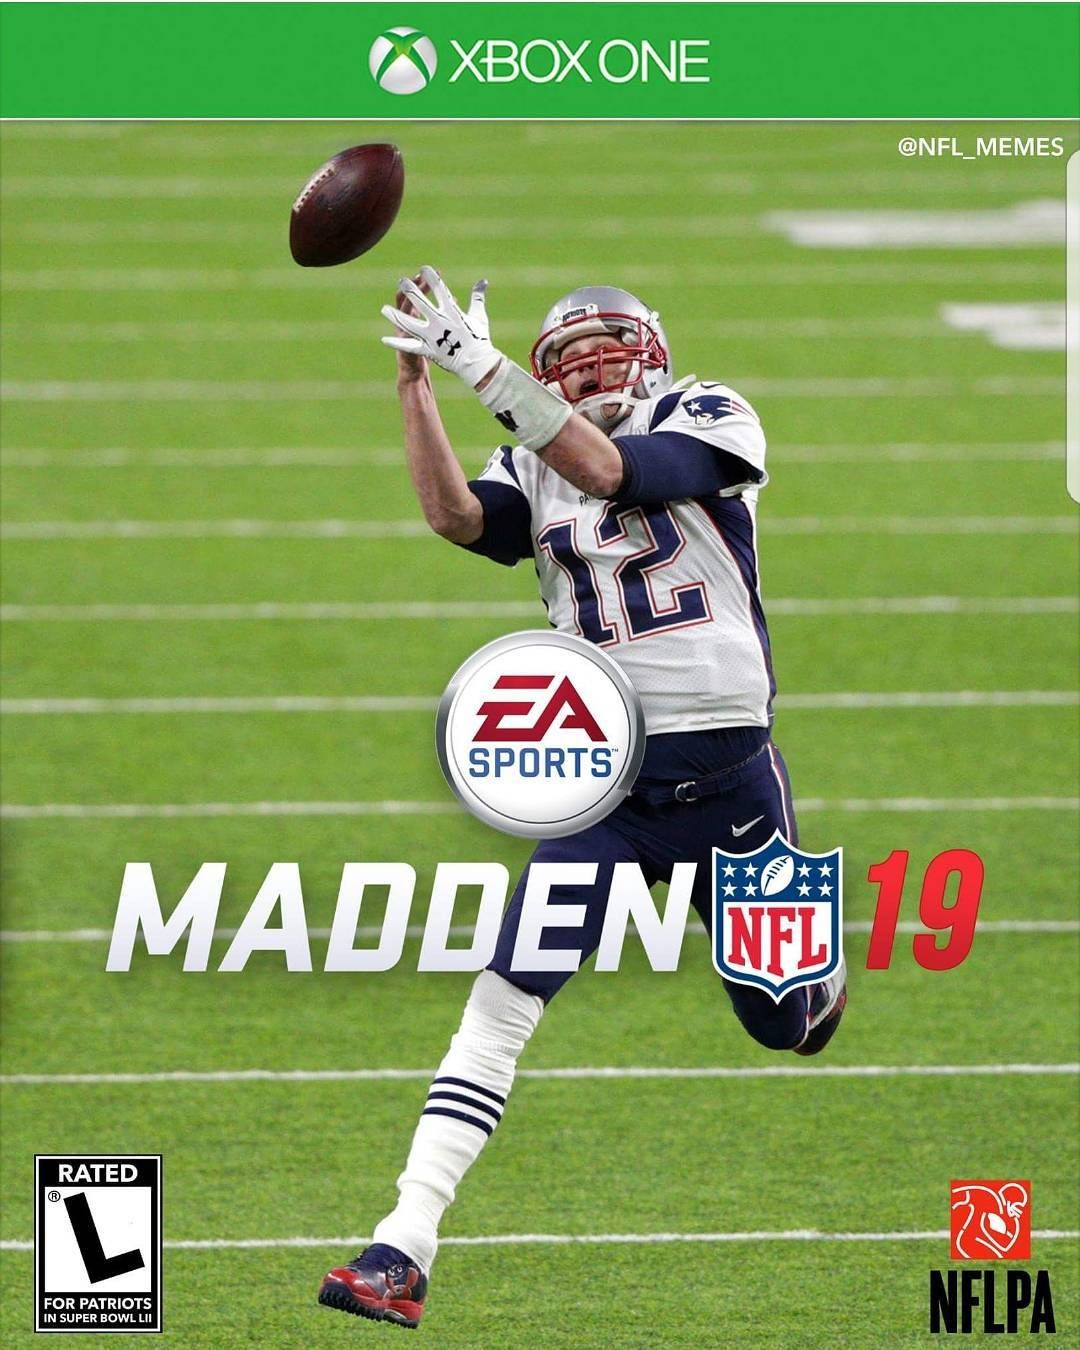 Credit to nfl memes on face book would you buy this rated L